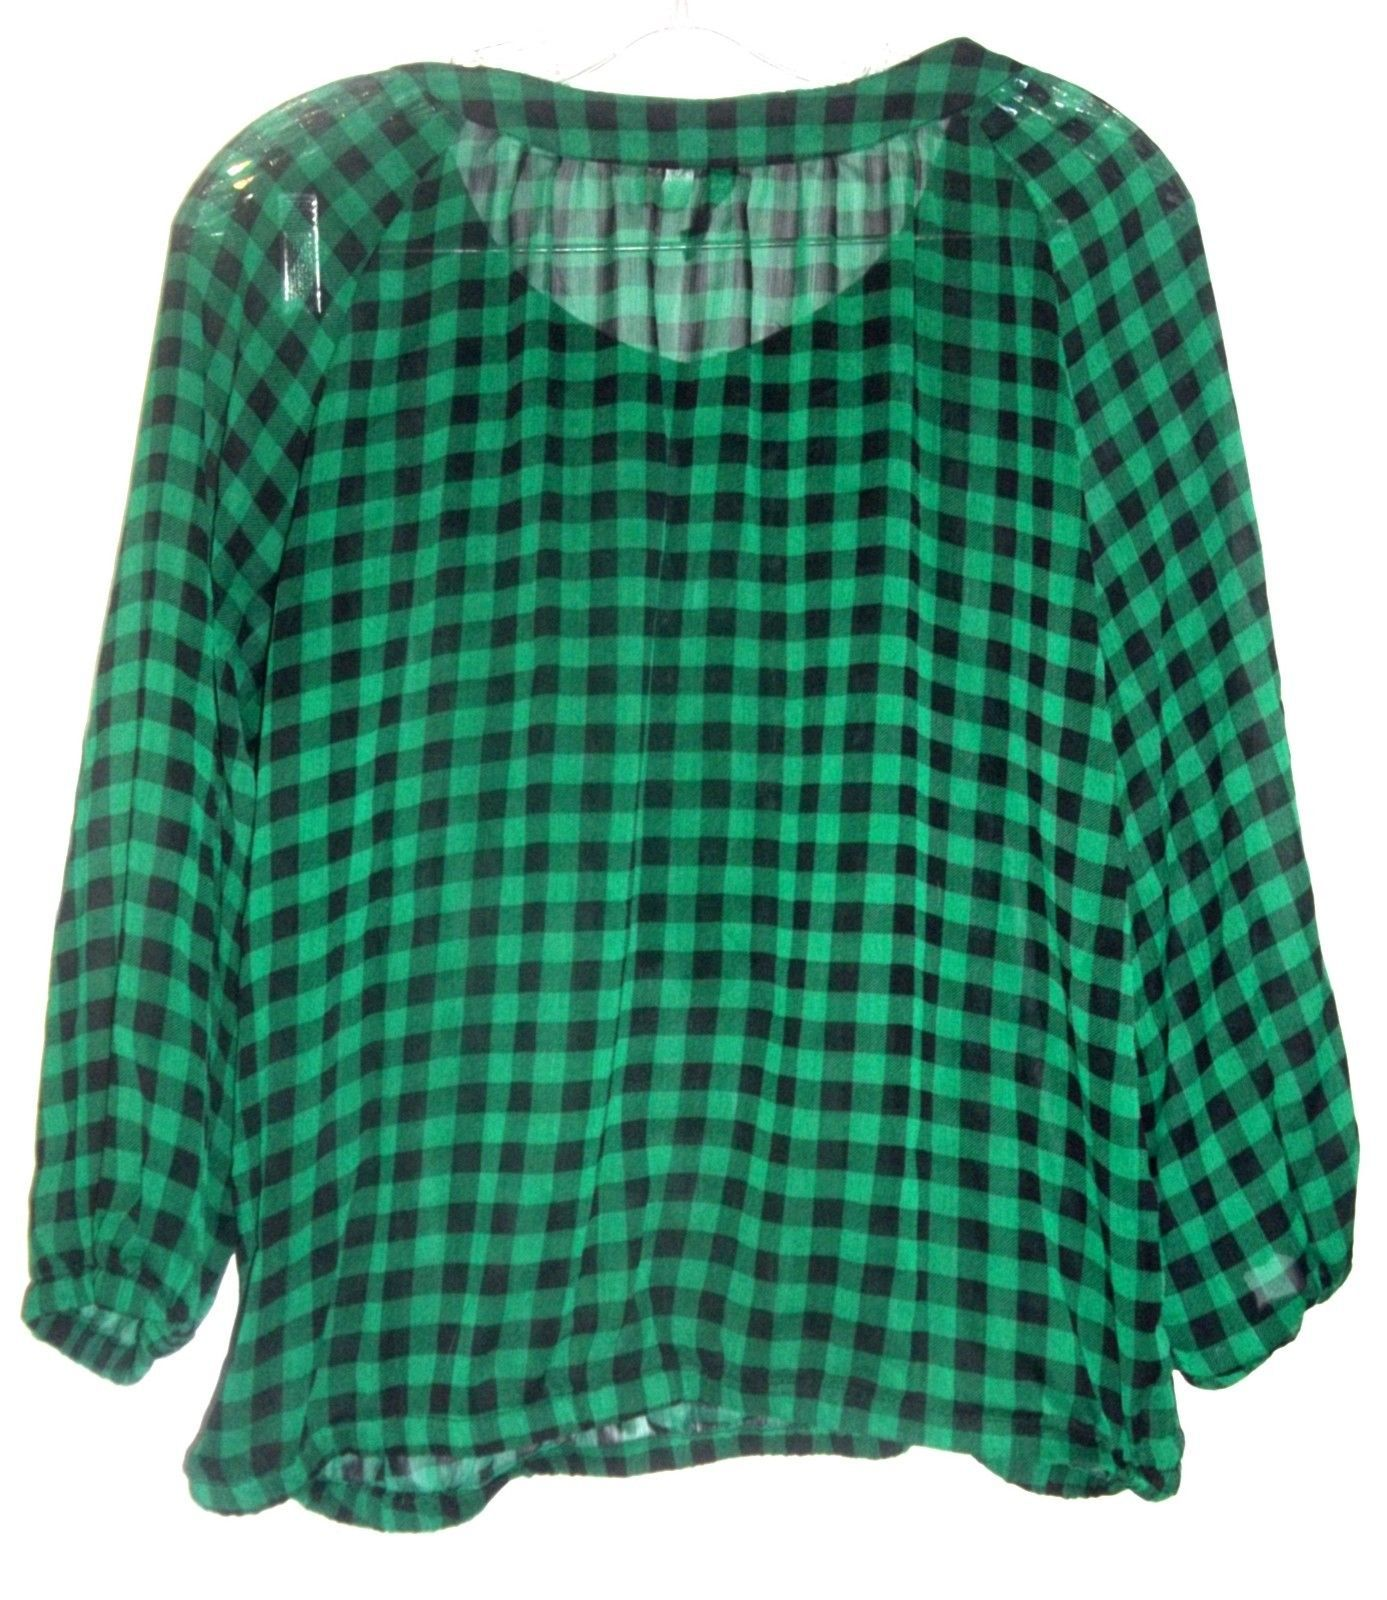 Green and Black Checkered Plaid Top Sheer Long Sleeve Top by Divided H&M Sz 10